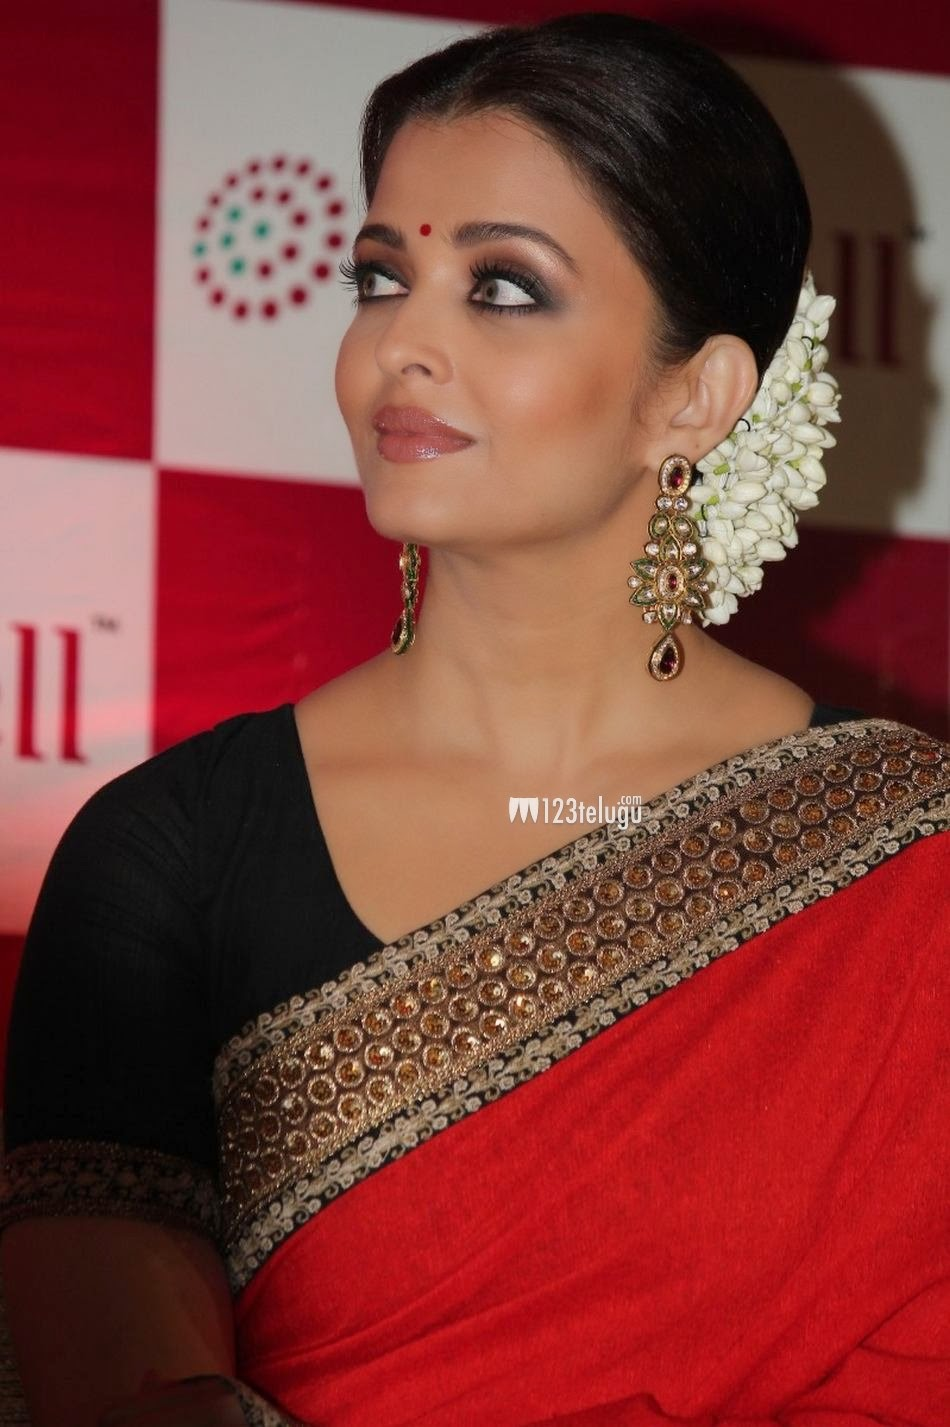 Aishwarya Rai Hot and Sexy in Red Saree Unseen Pics | Hot ...